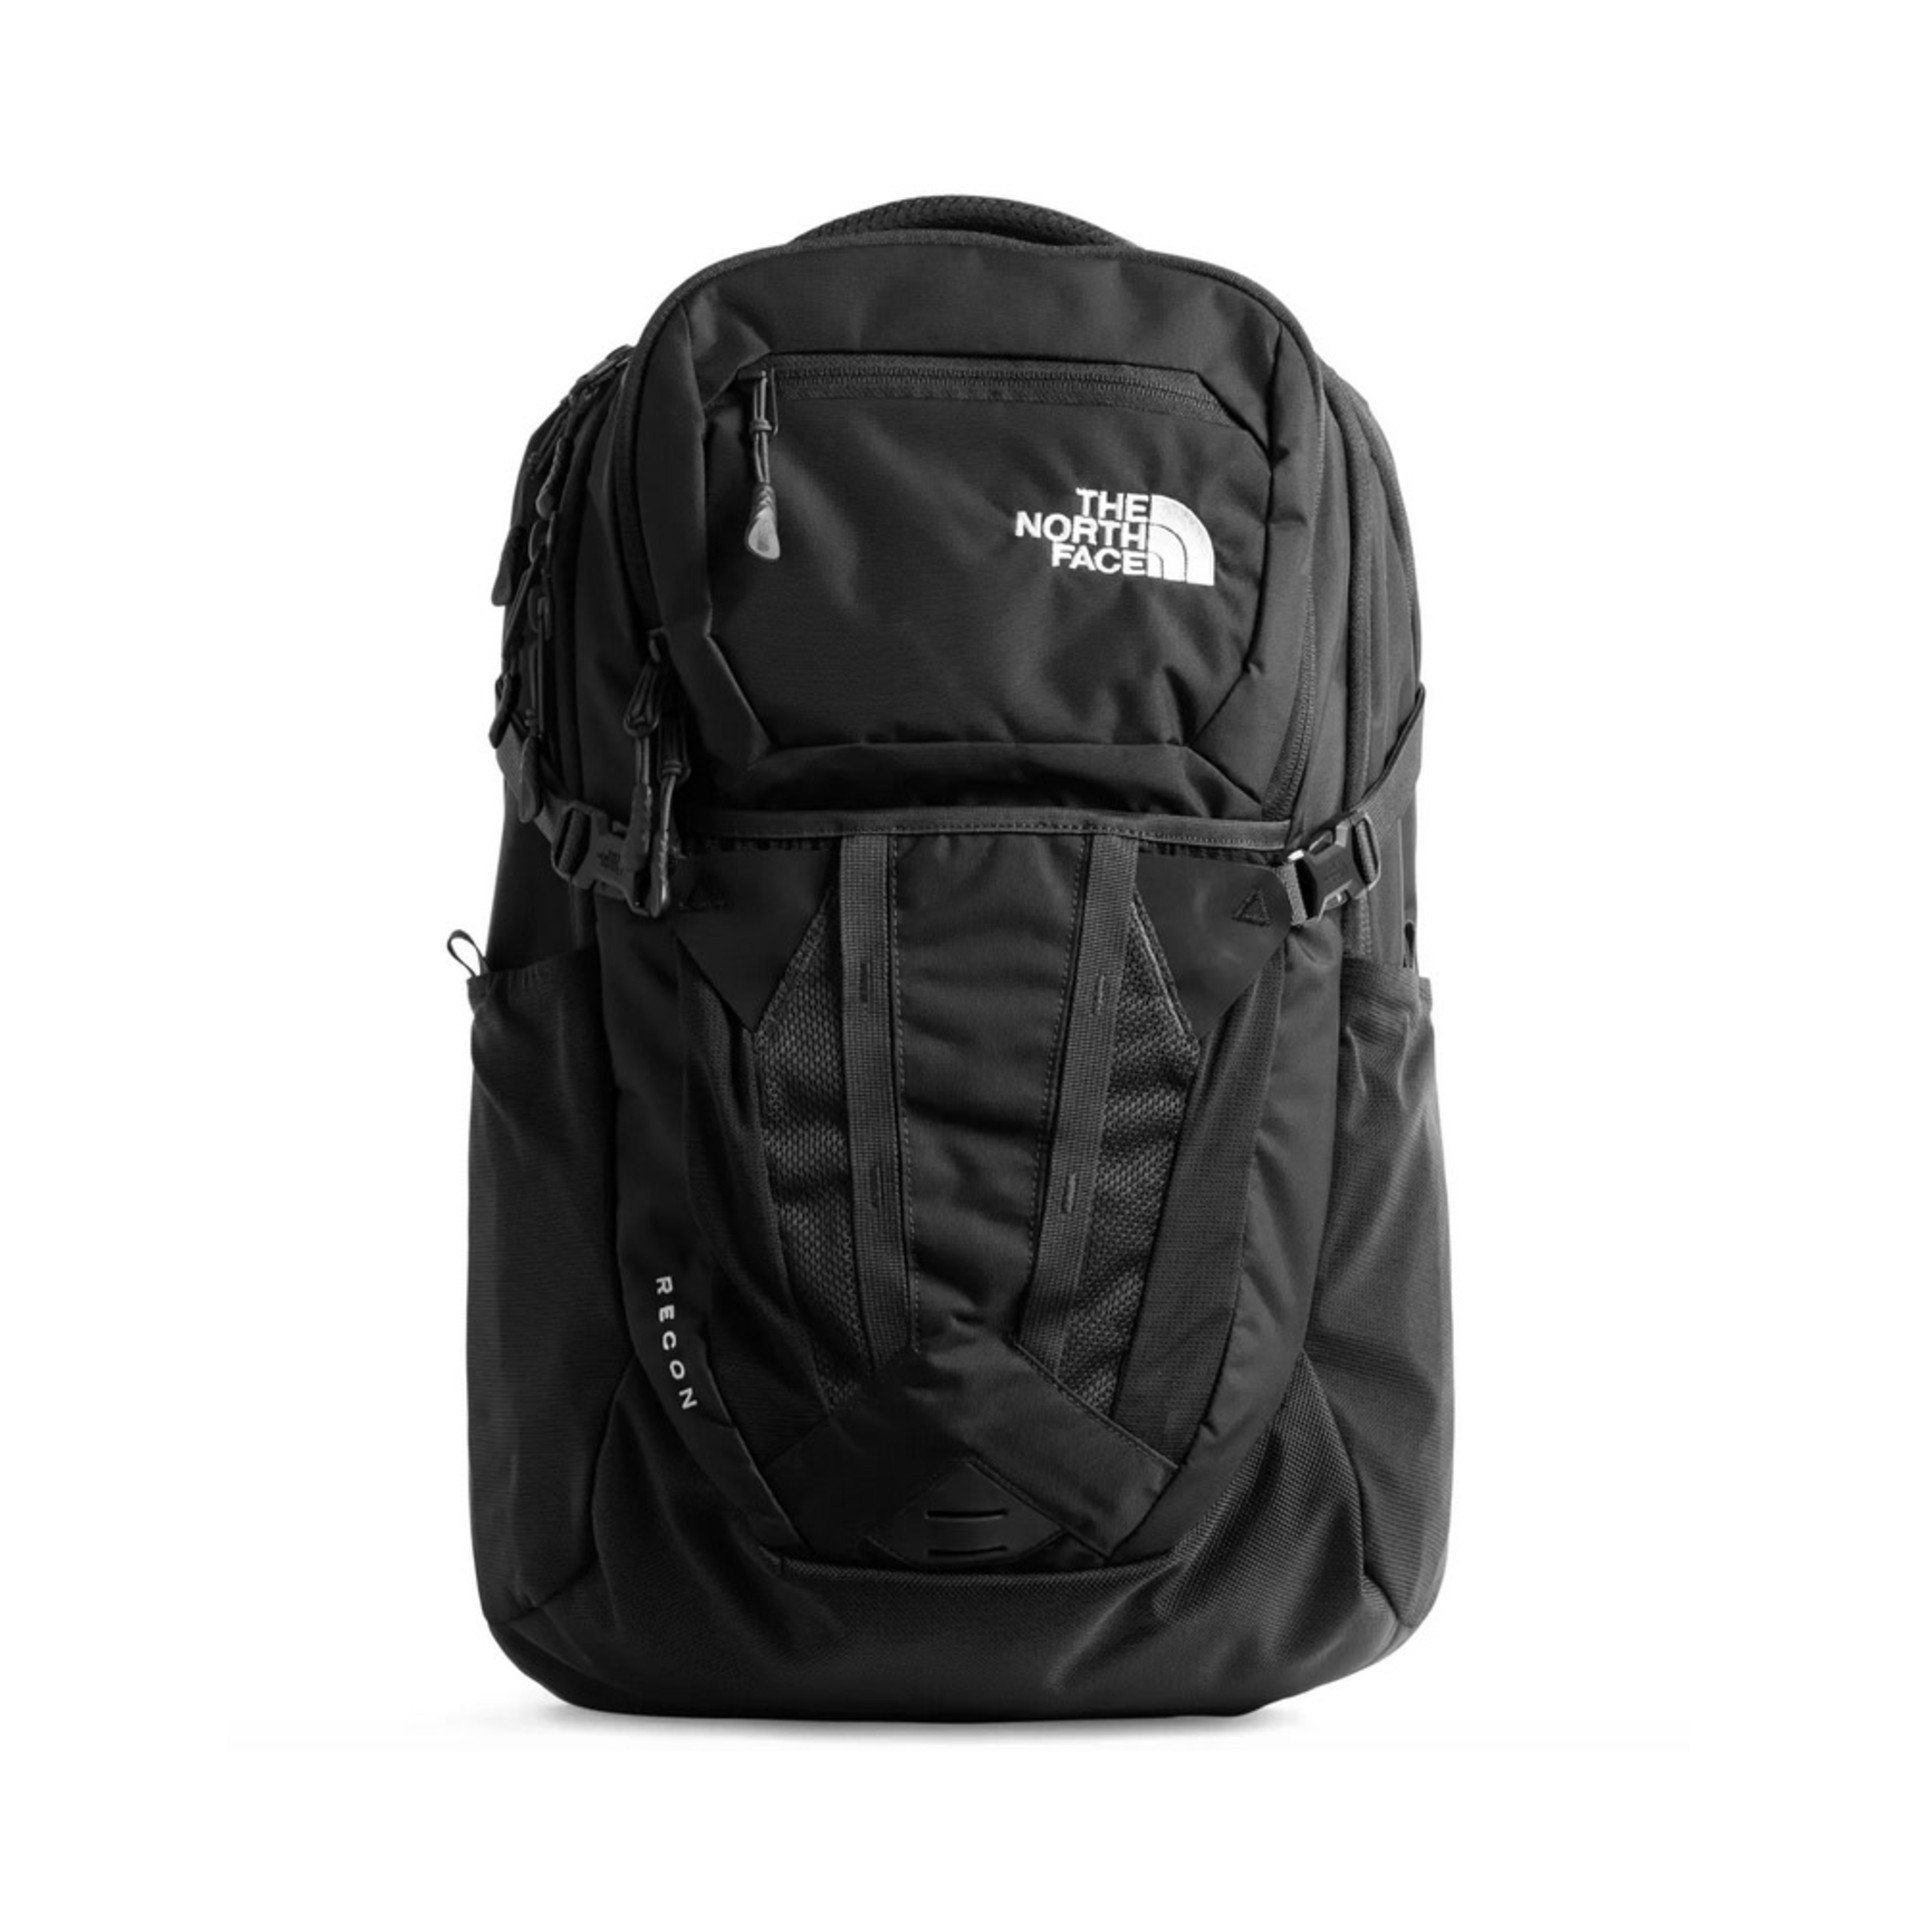 The North Face Recon Backpack Black Front